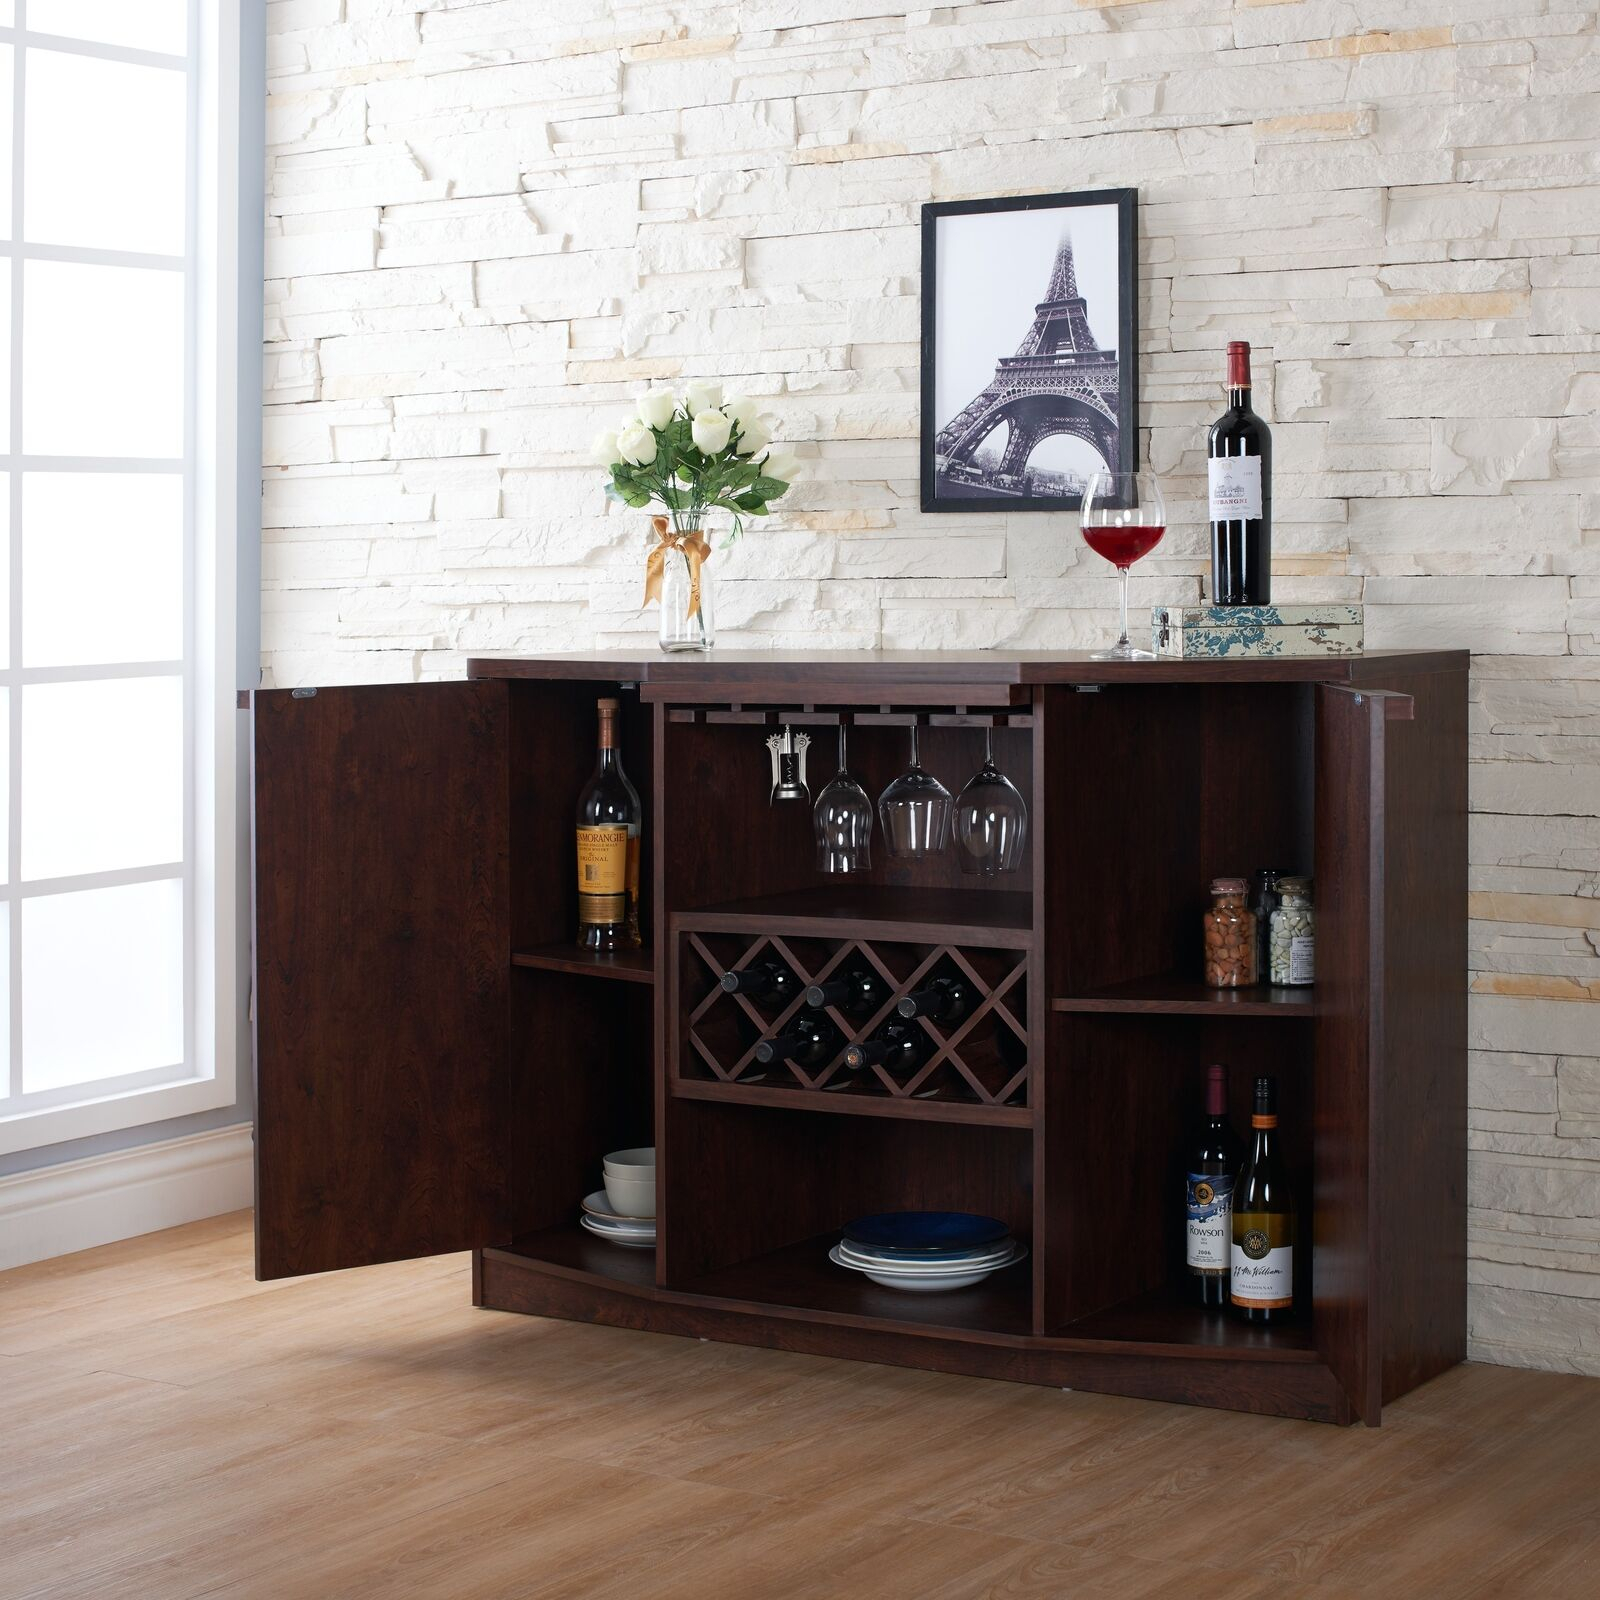 Details About Wine Bar Buffet Cabinet Bottle Rack Wood Storage Hutch Furniture Walnut Brown Intended For Buffets With Bottle And Glass Storage (Gallery 5 of 30)